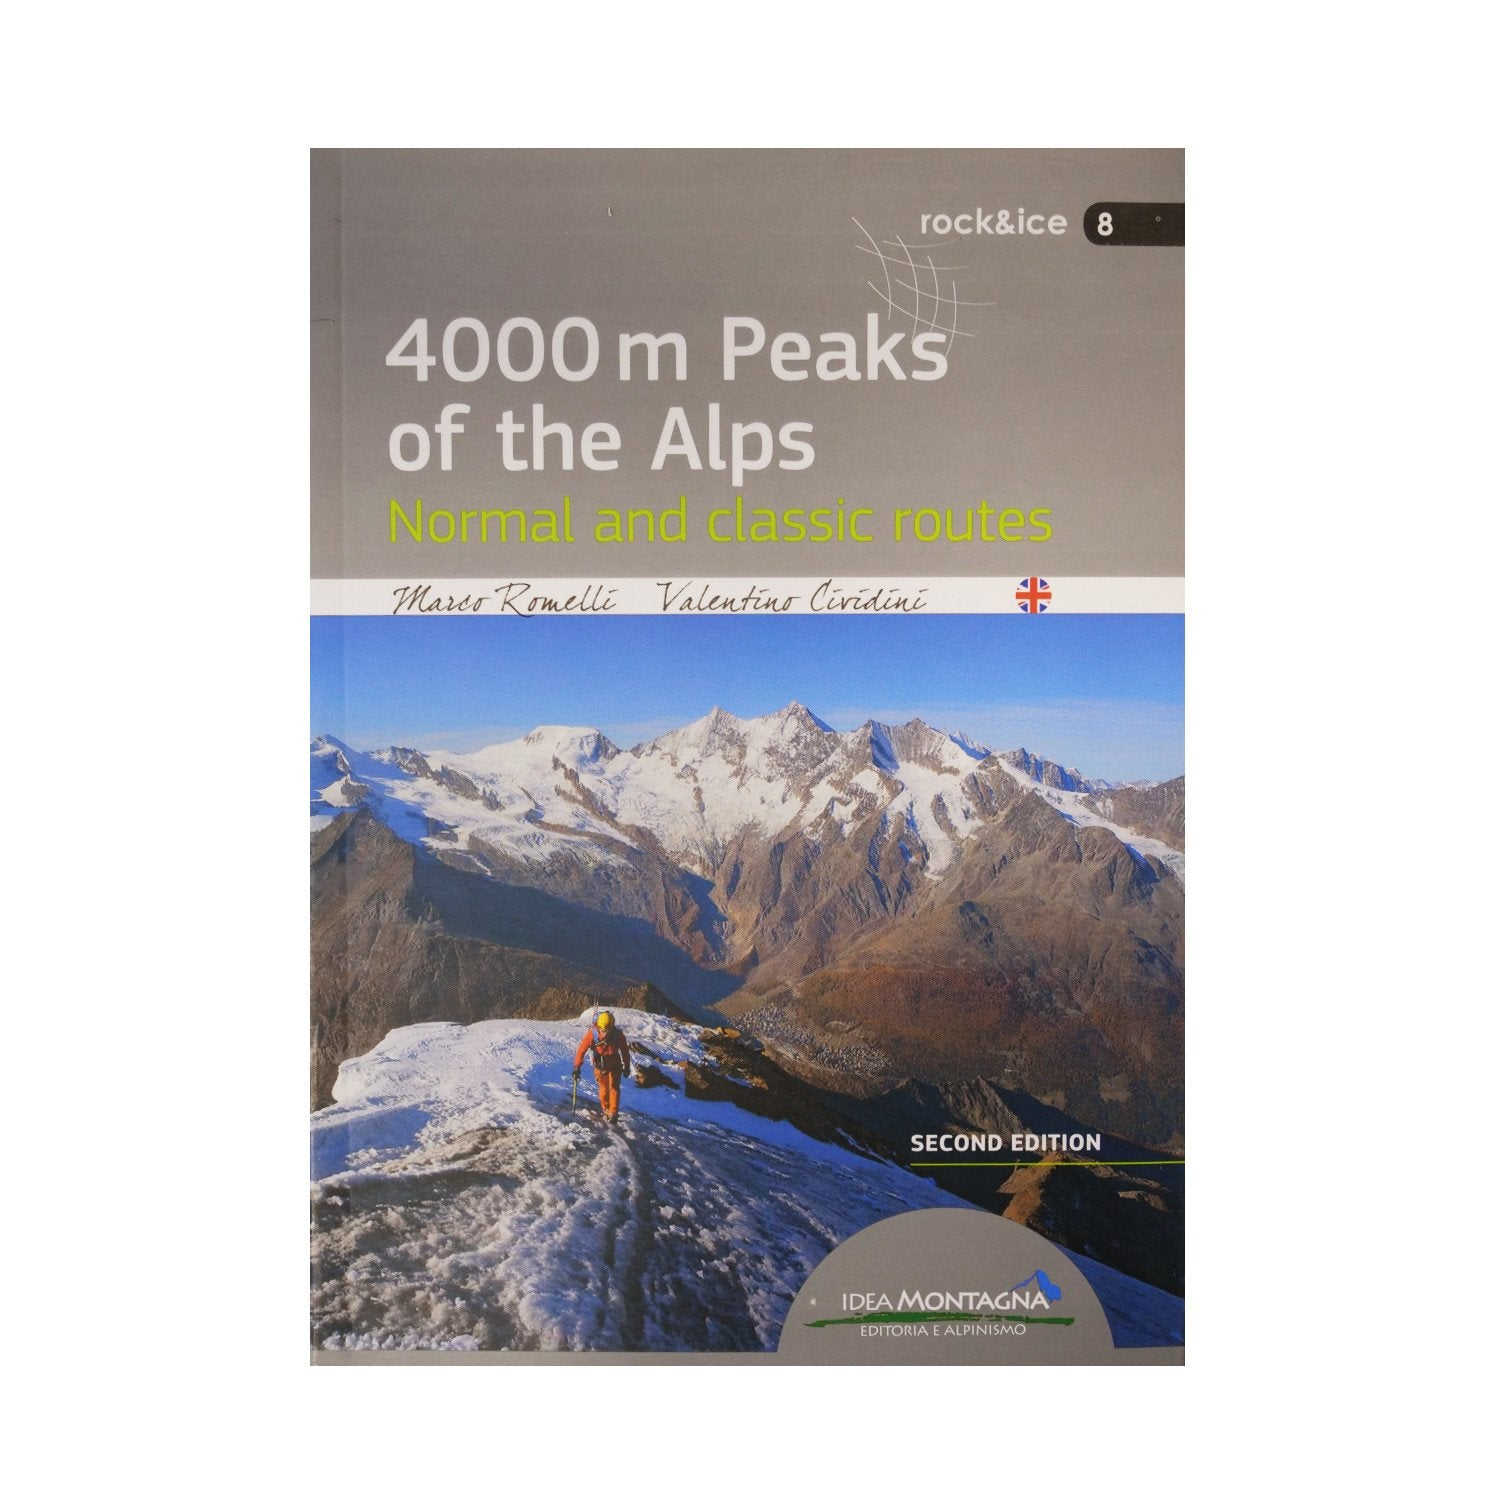 4000m Peaks of the Alps - Normal and Classic Routes 2nd Edition